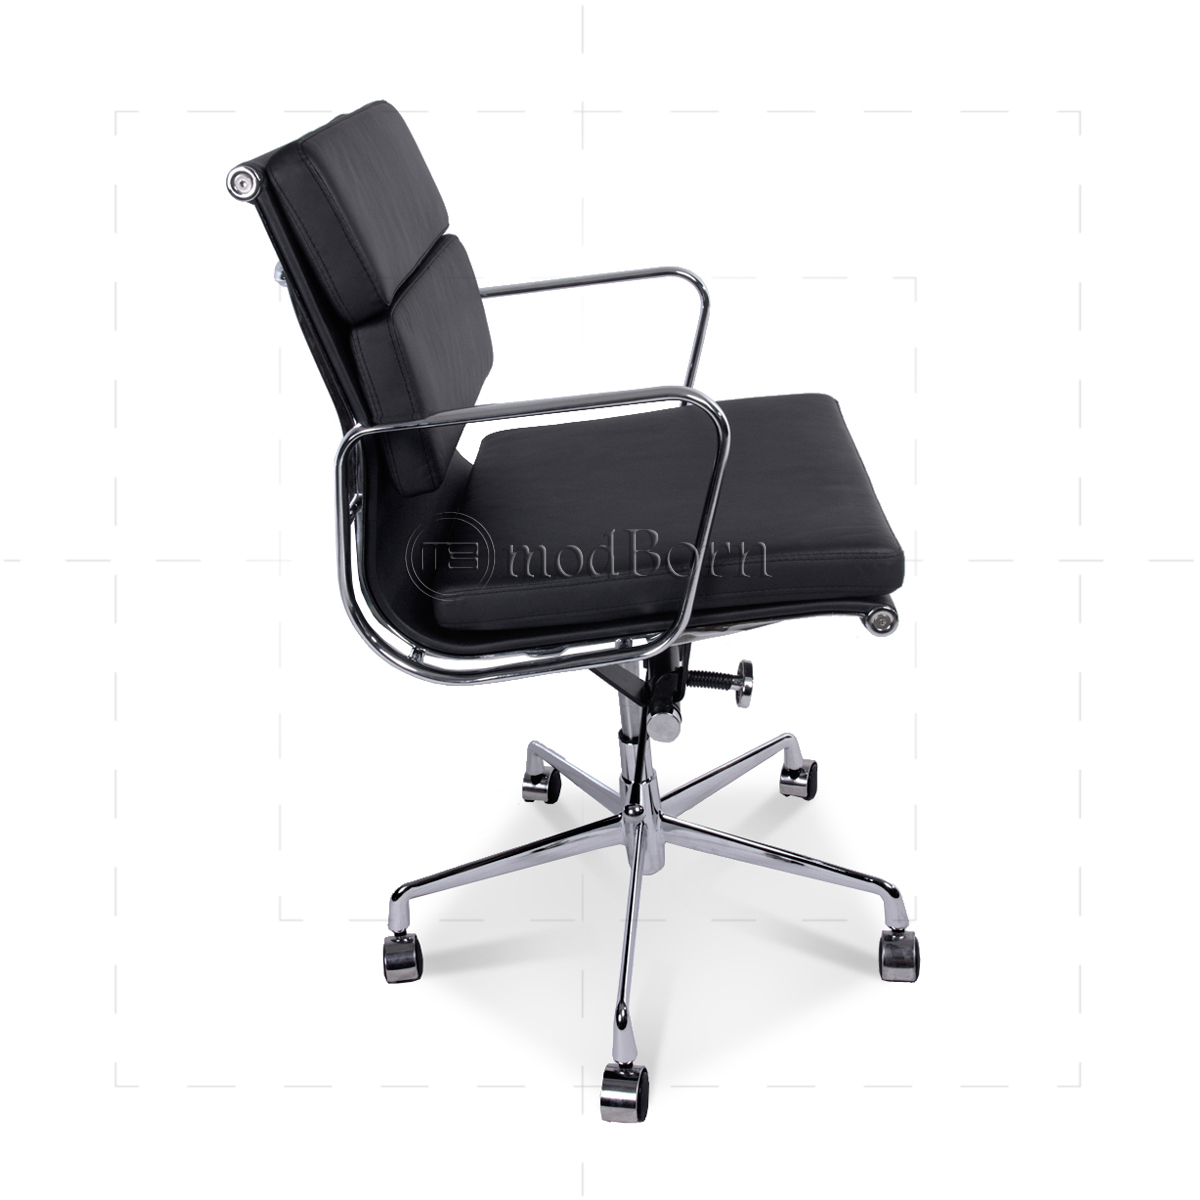 Ea217 eames style office chair low back soft pad black for Eames side chair replica